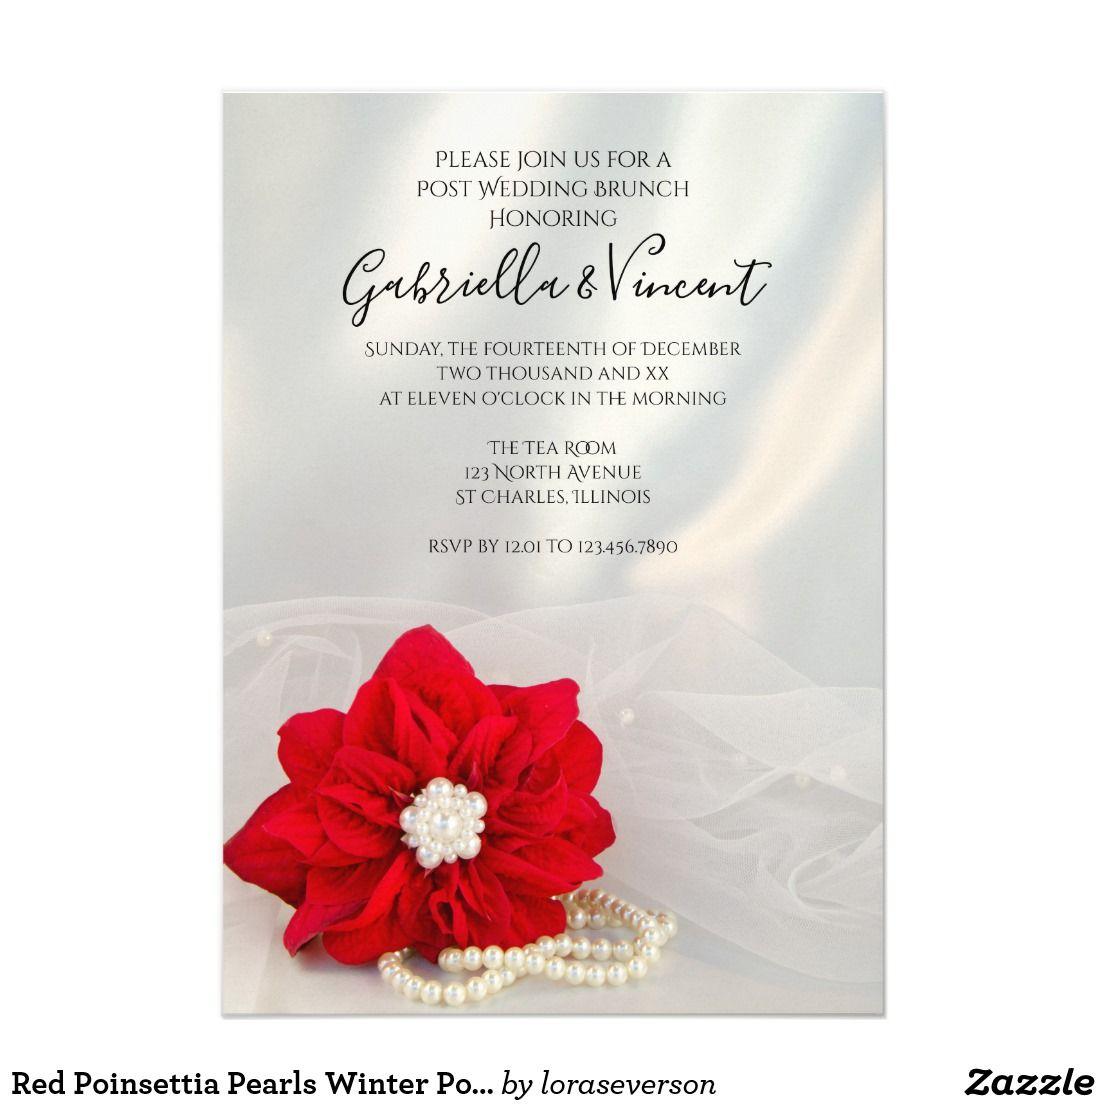 Red Poinsettia Pearls Winter Post Wedding Brunch Invitation in 2018 ...